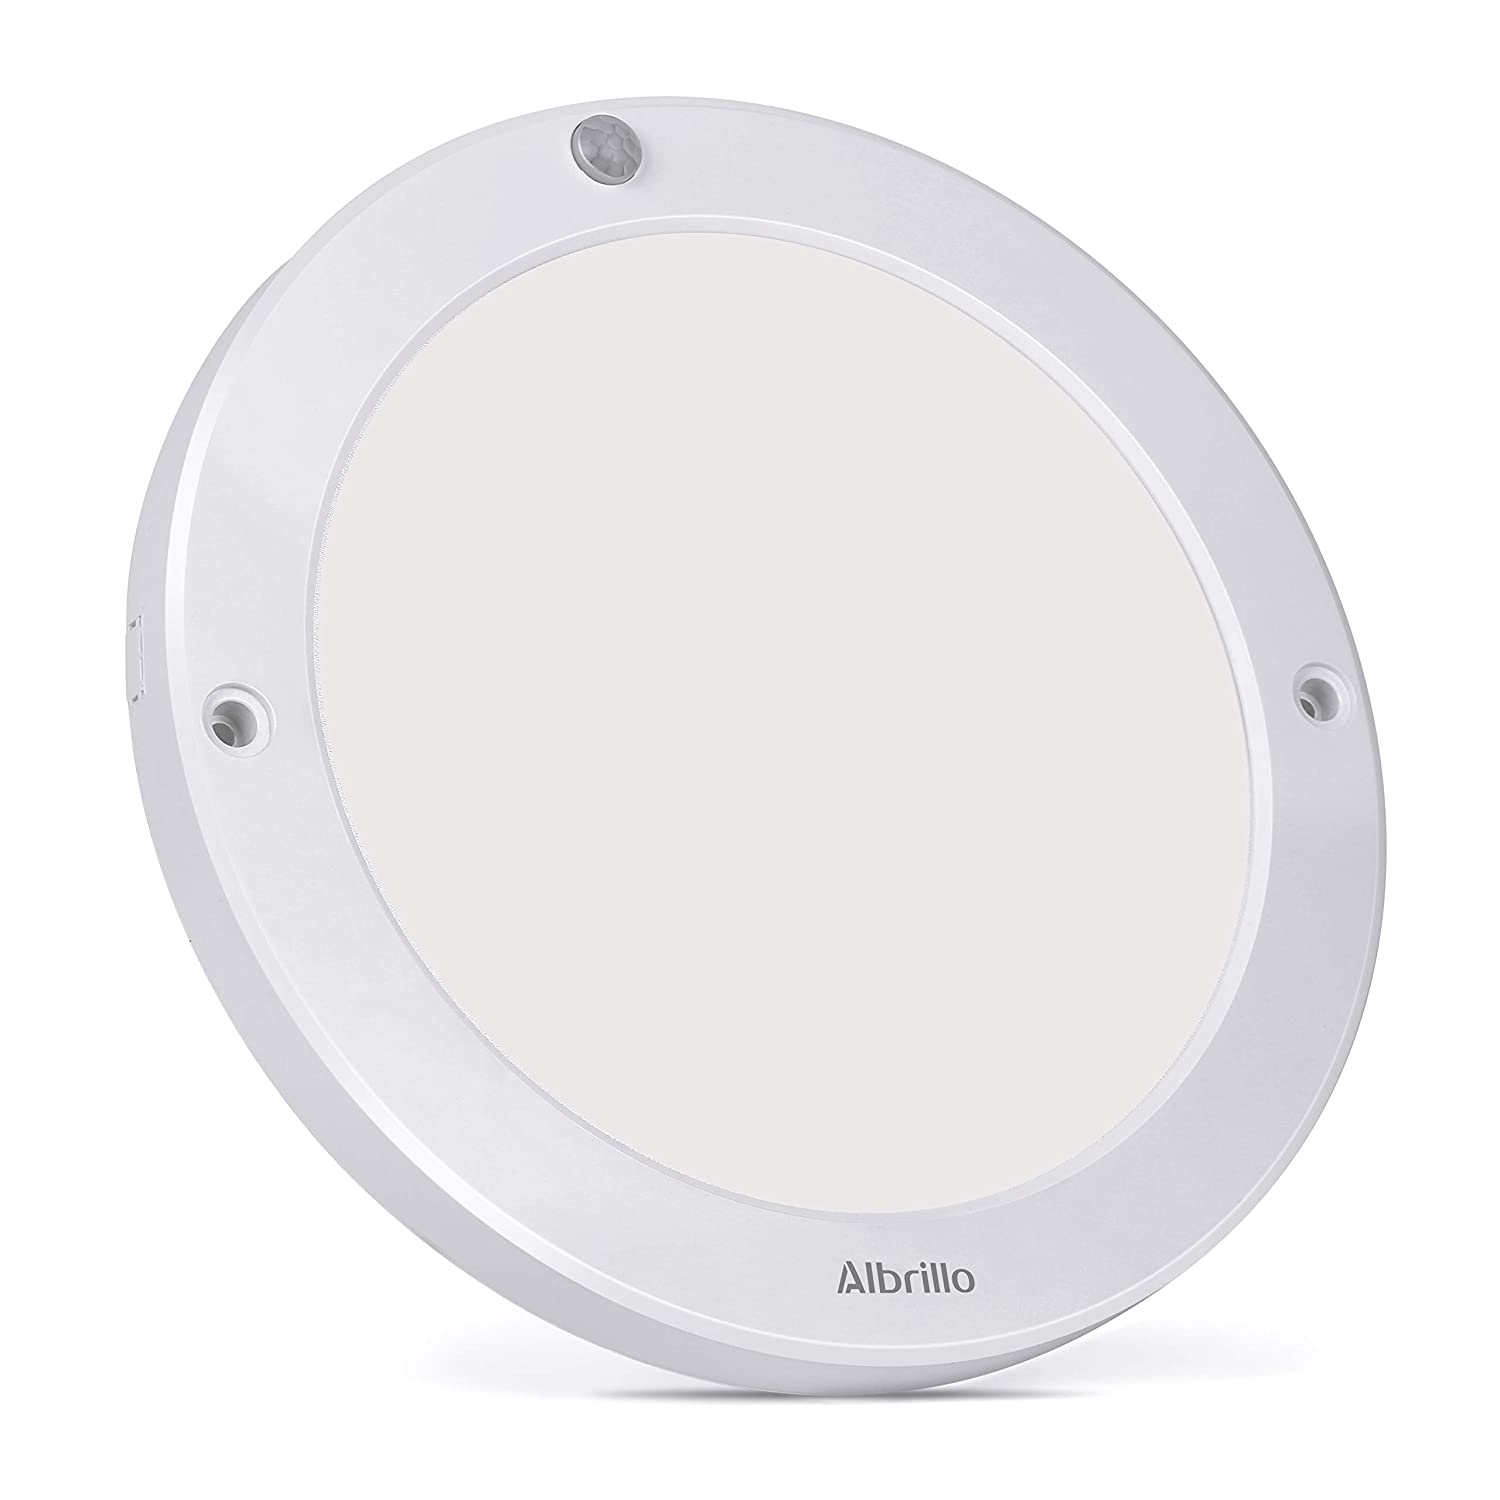 Motion Sensor Ceiling Light 100 Watt Equivalent - Albrillo Indoor Outdoor LED Ceiling Lights for Stairs Closet Room Basement Hallway 1200lm Warm White